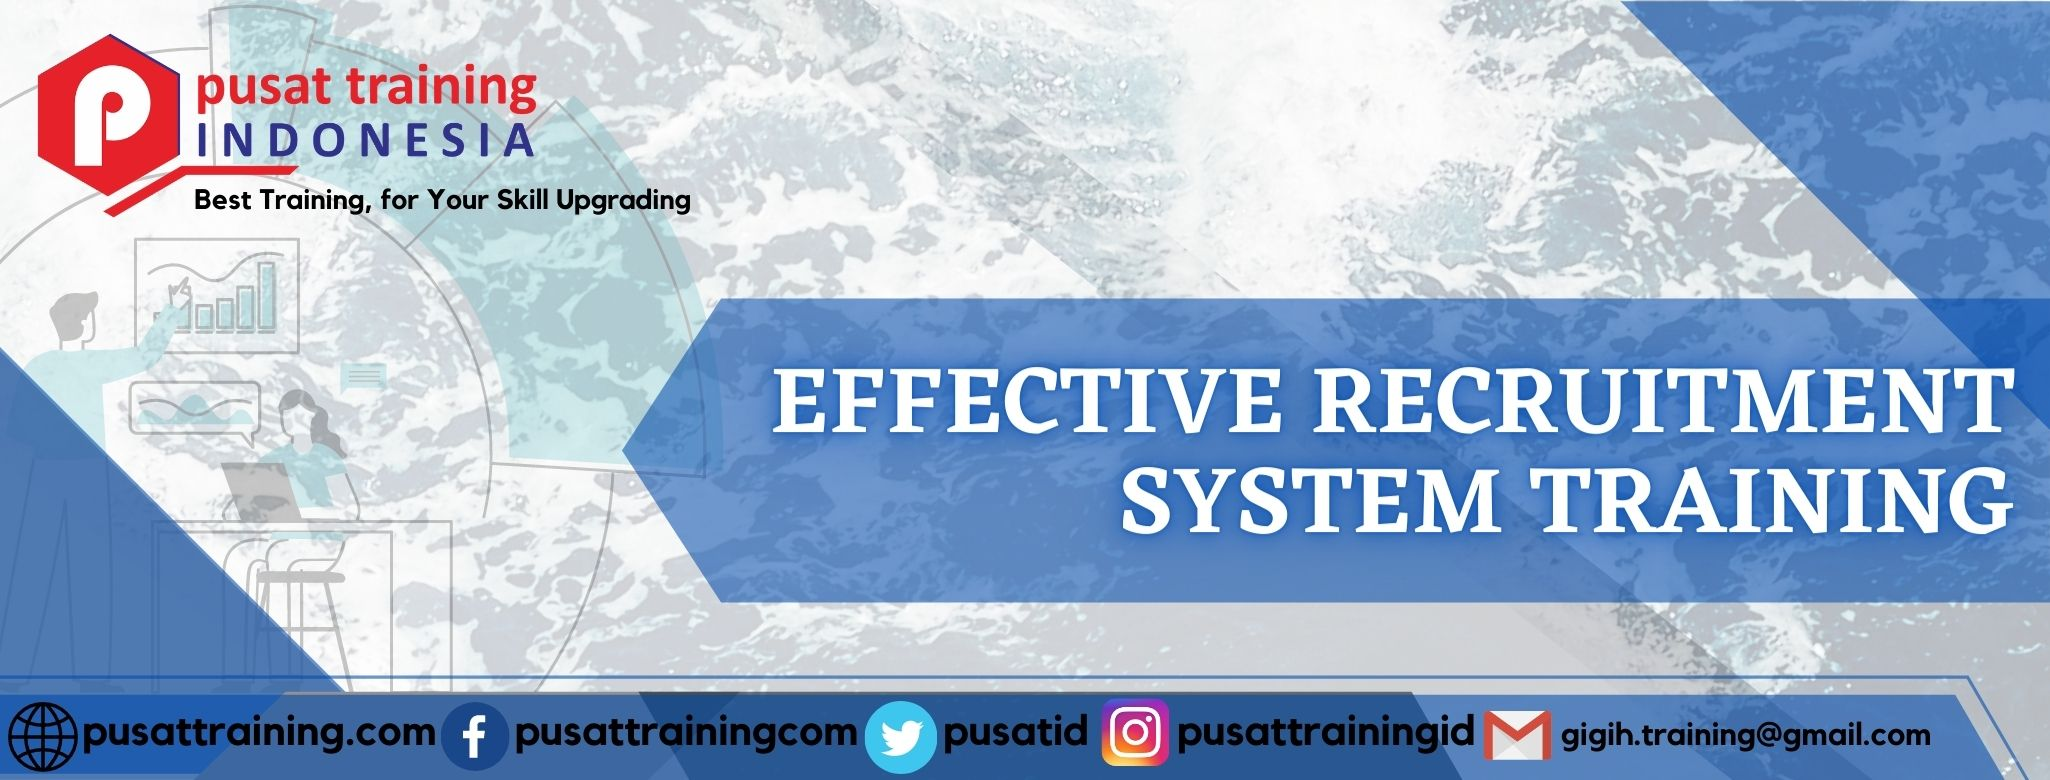 effective-recruitment-system-training